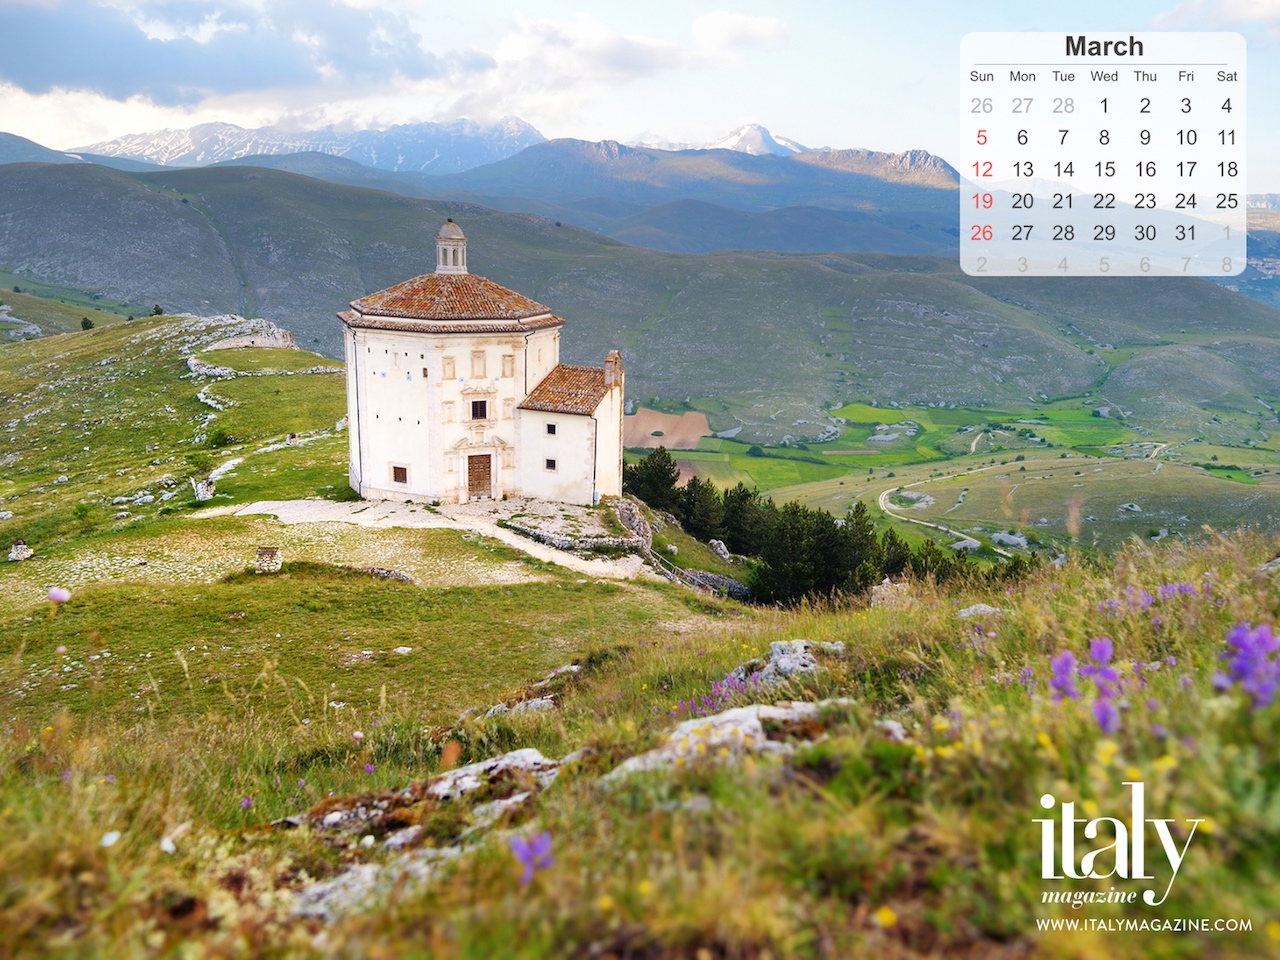 Wallpaper Calendar March 2017 Italy Magazine